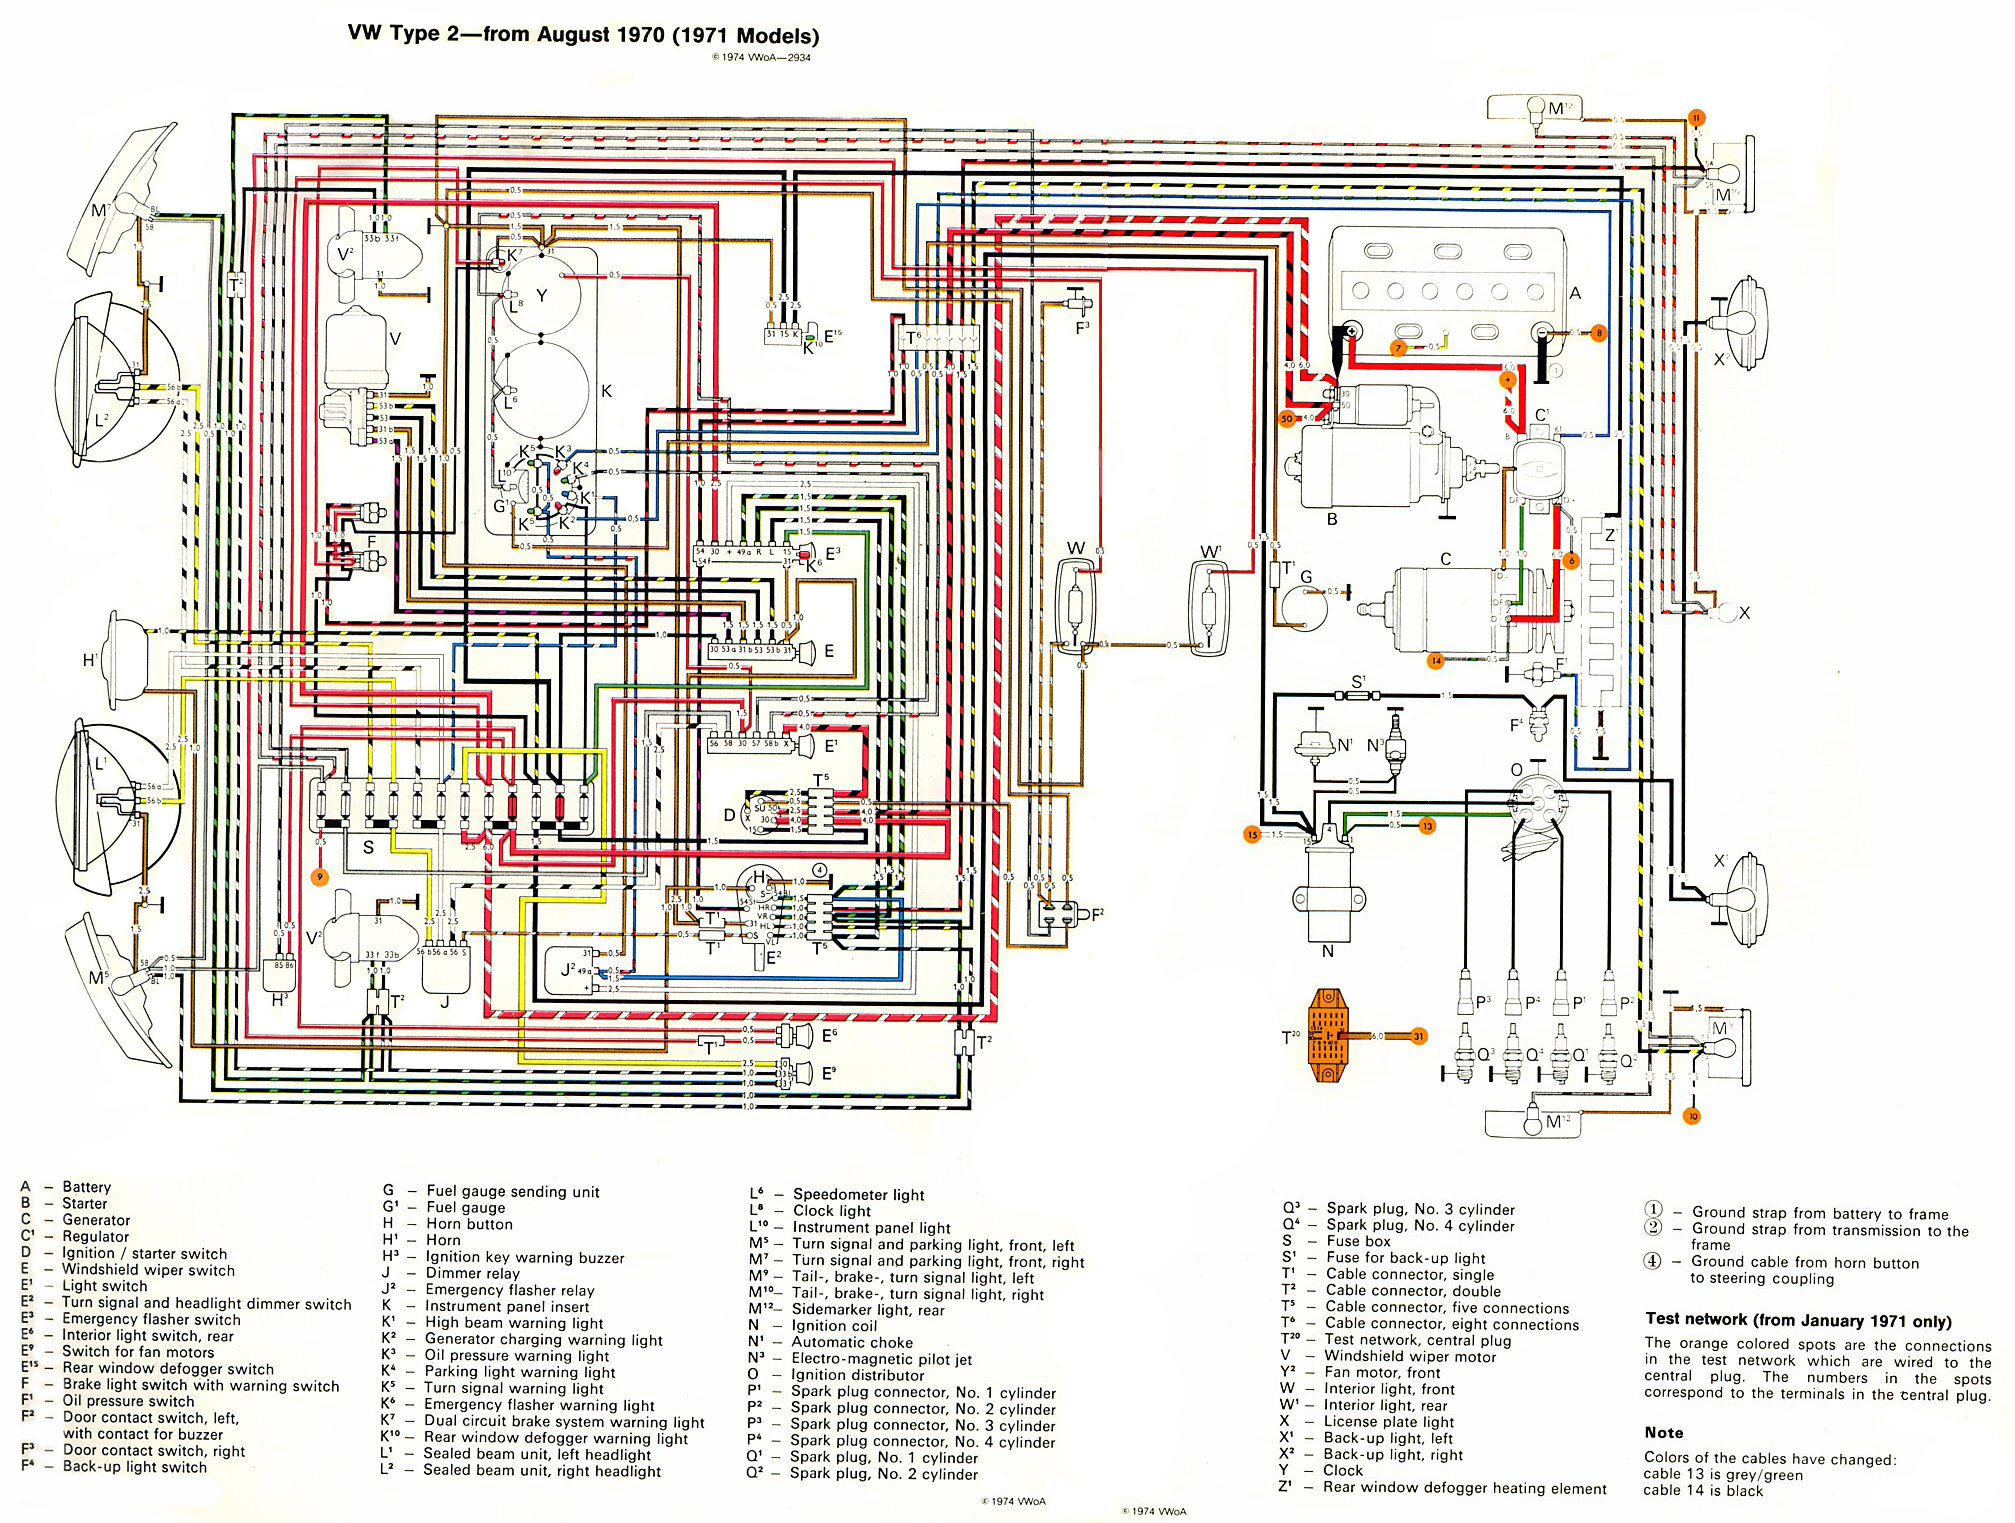 baybus_71_fixed bad boy buggy wiring diagram 36 volt ezgo wiring diagram 1997 vw golf wiring diagram at mifinder.co